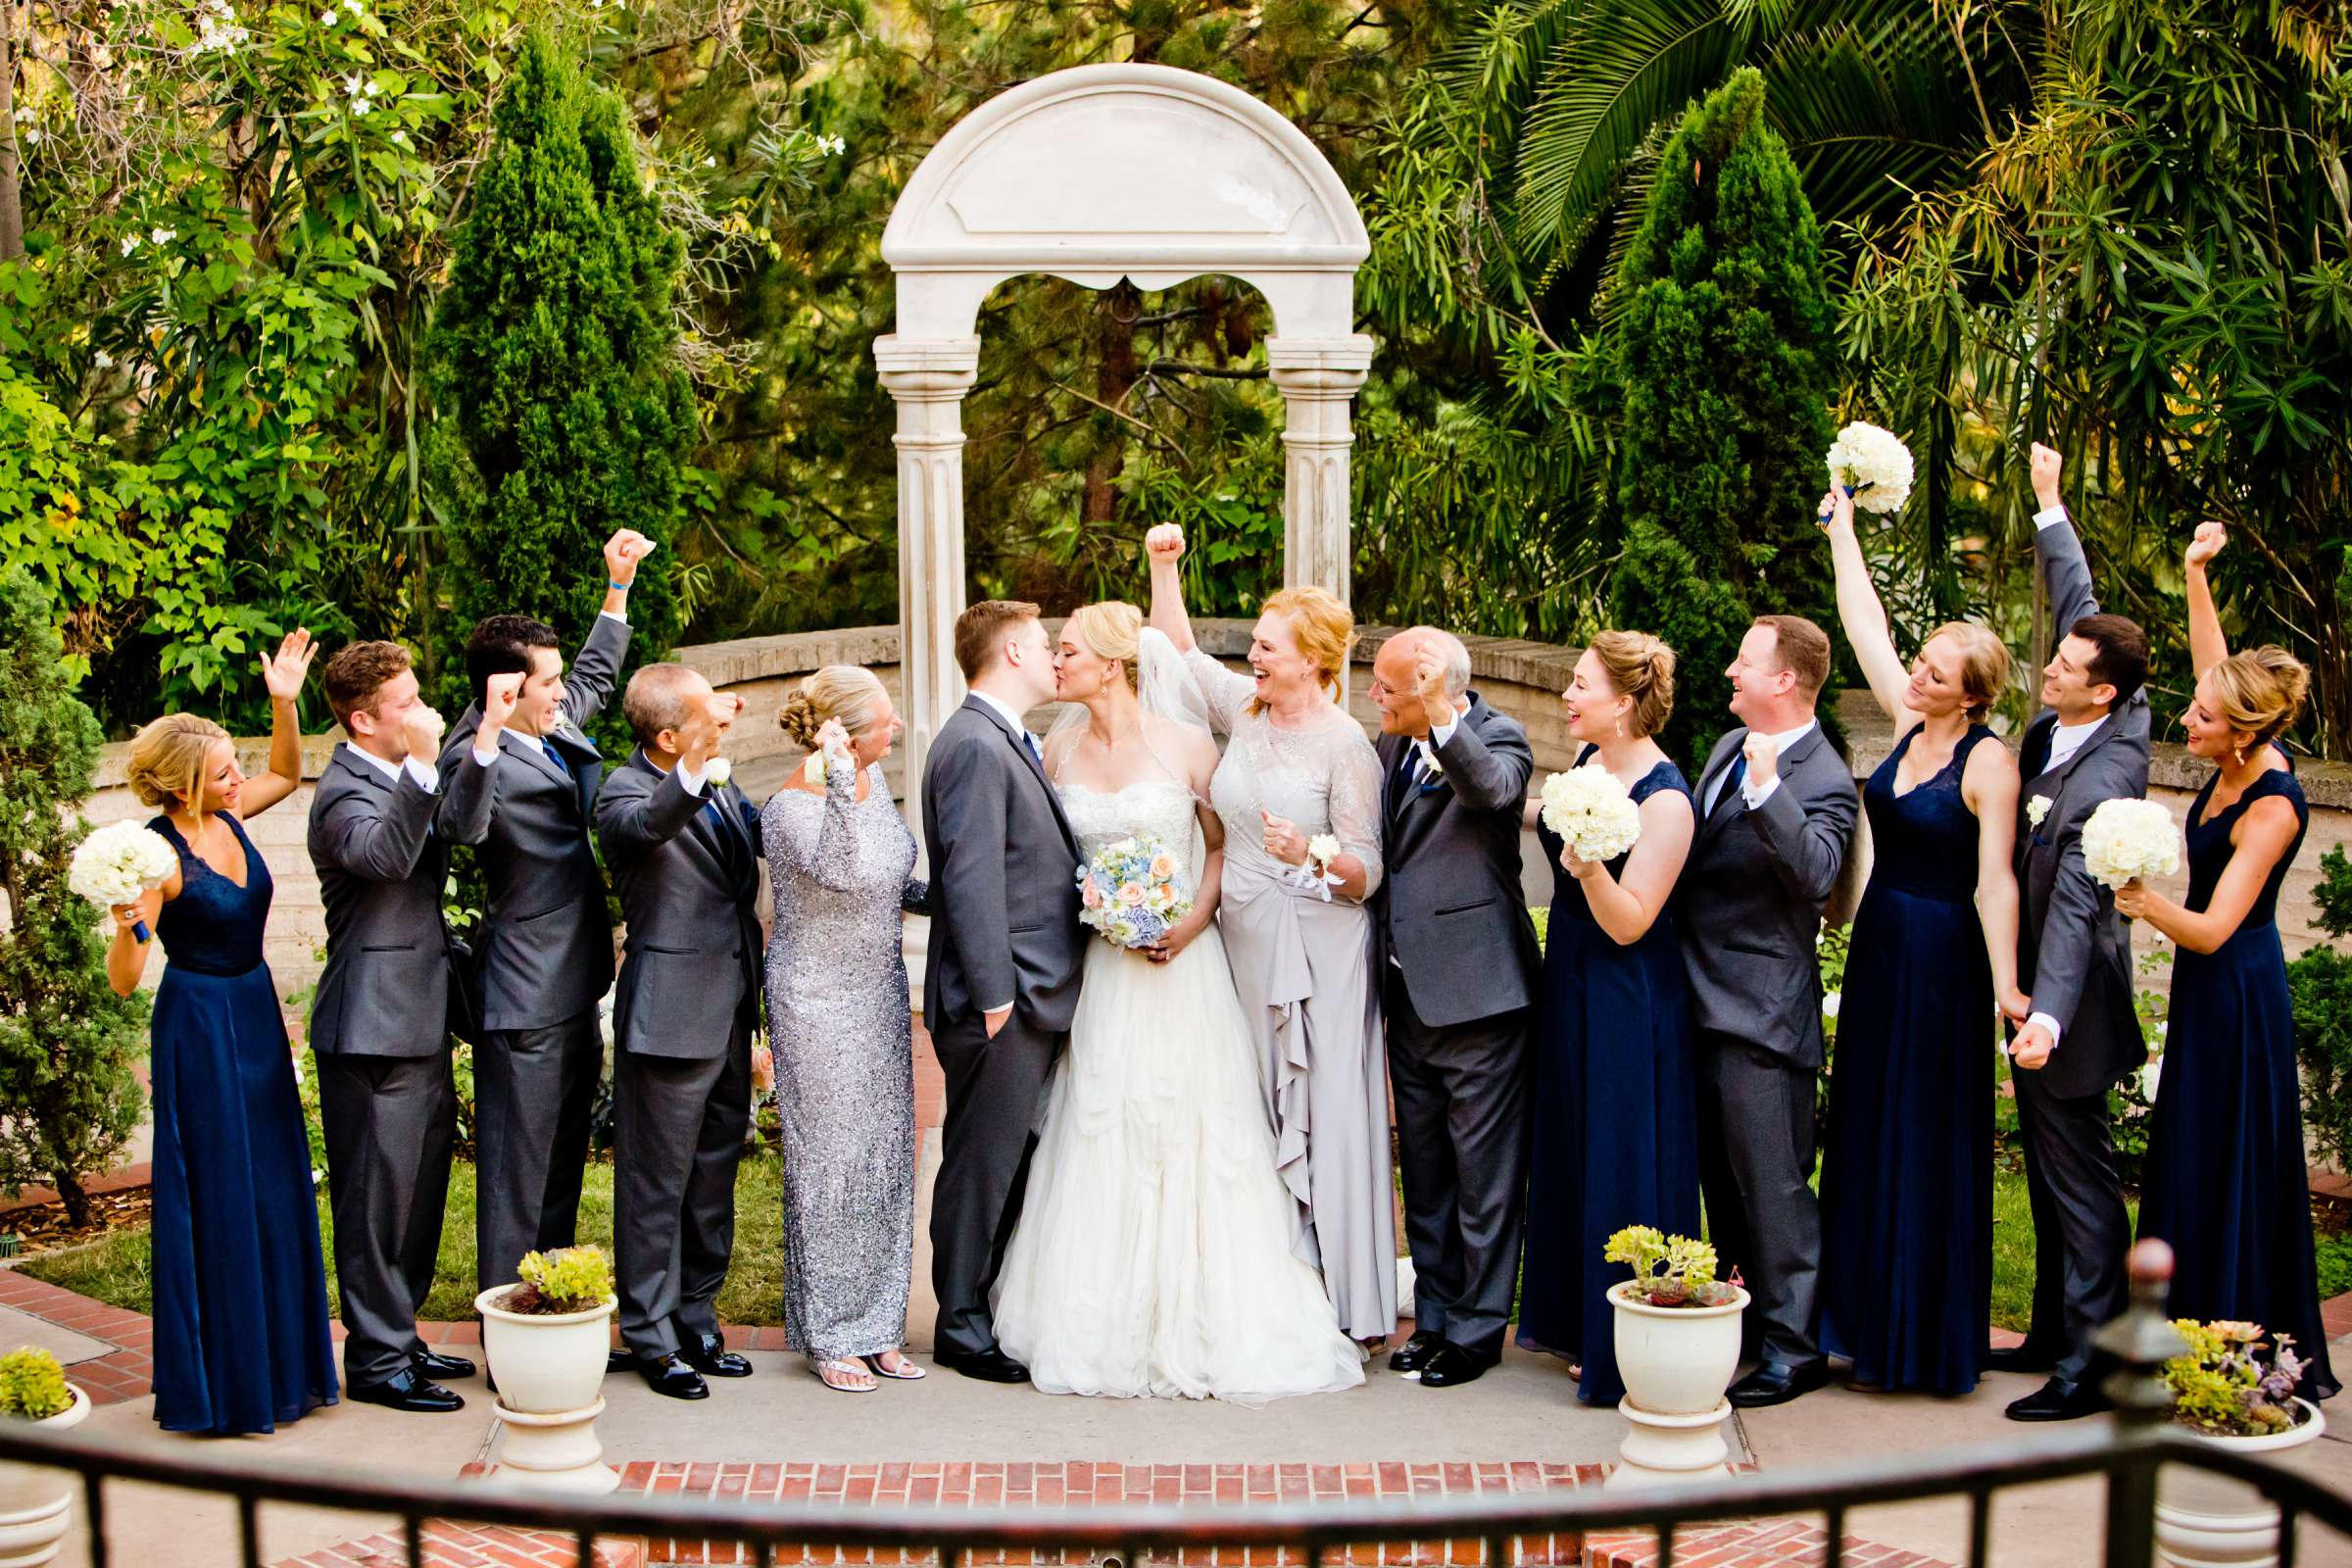 The Prado Wedding coordinated by Sublime Weddings, Ashley and Andrew Wedding Photo #10 by True Photography